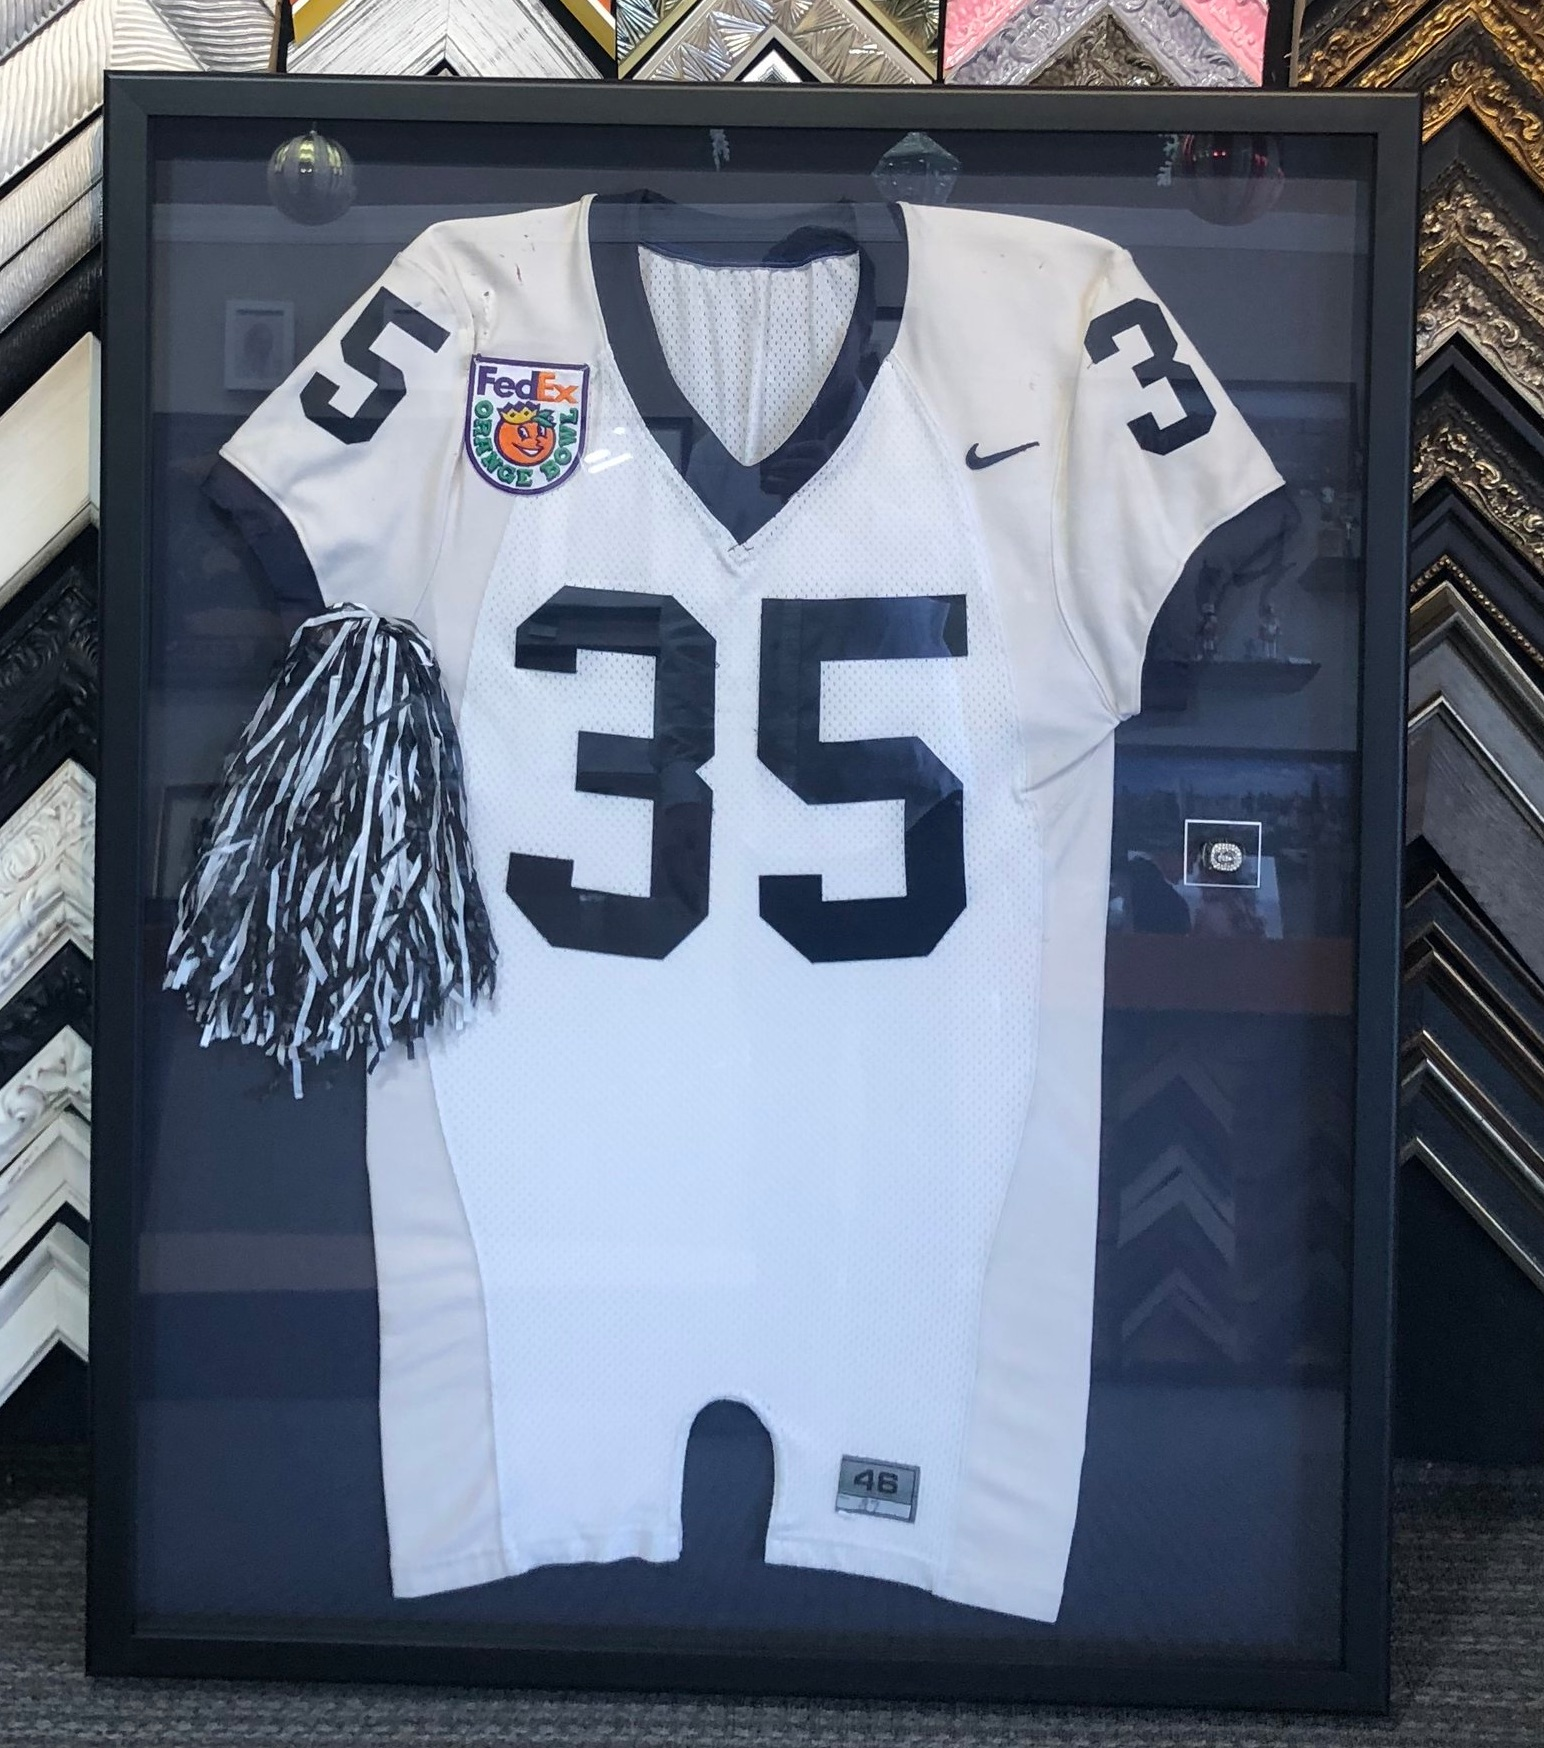 We hand sew all of our jerseys. - Our Focus is to preserve everything we frame. We use archival materials, hand sew fabrics to a mounting board and fabricate custom holders so your collection can be removed. We have more than 36 years of experience. Come in and see why people who win bids at Sotheby's, Christie's and local charities trust our work.